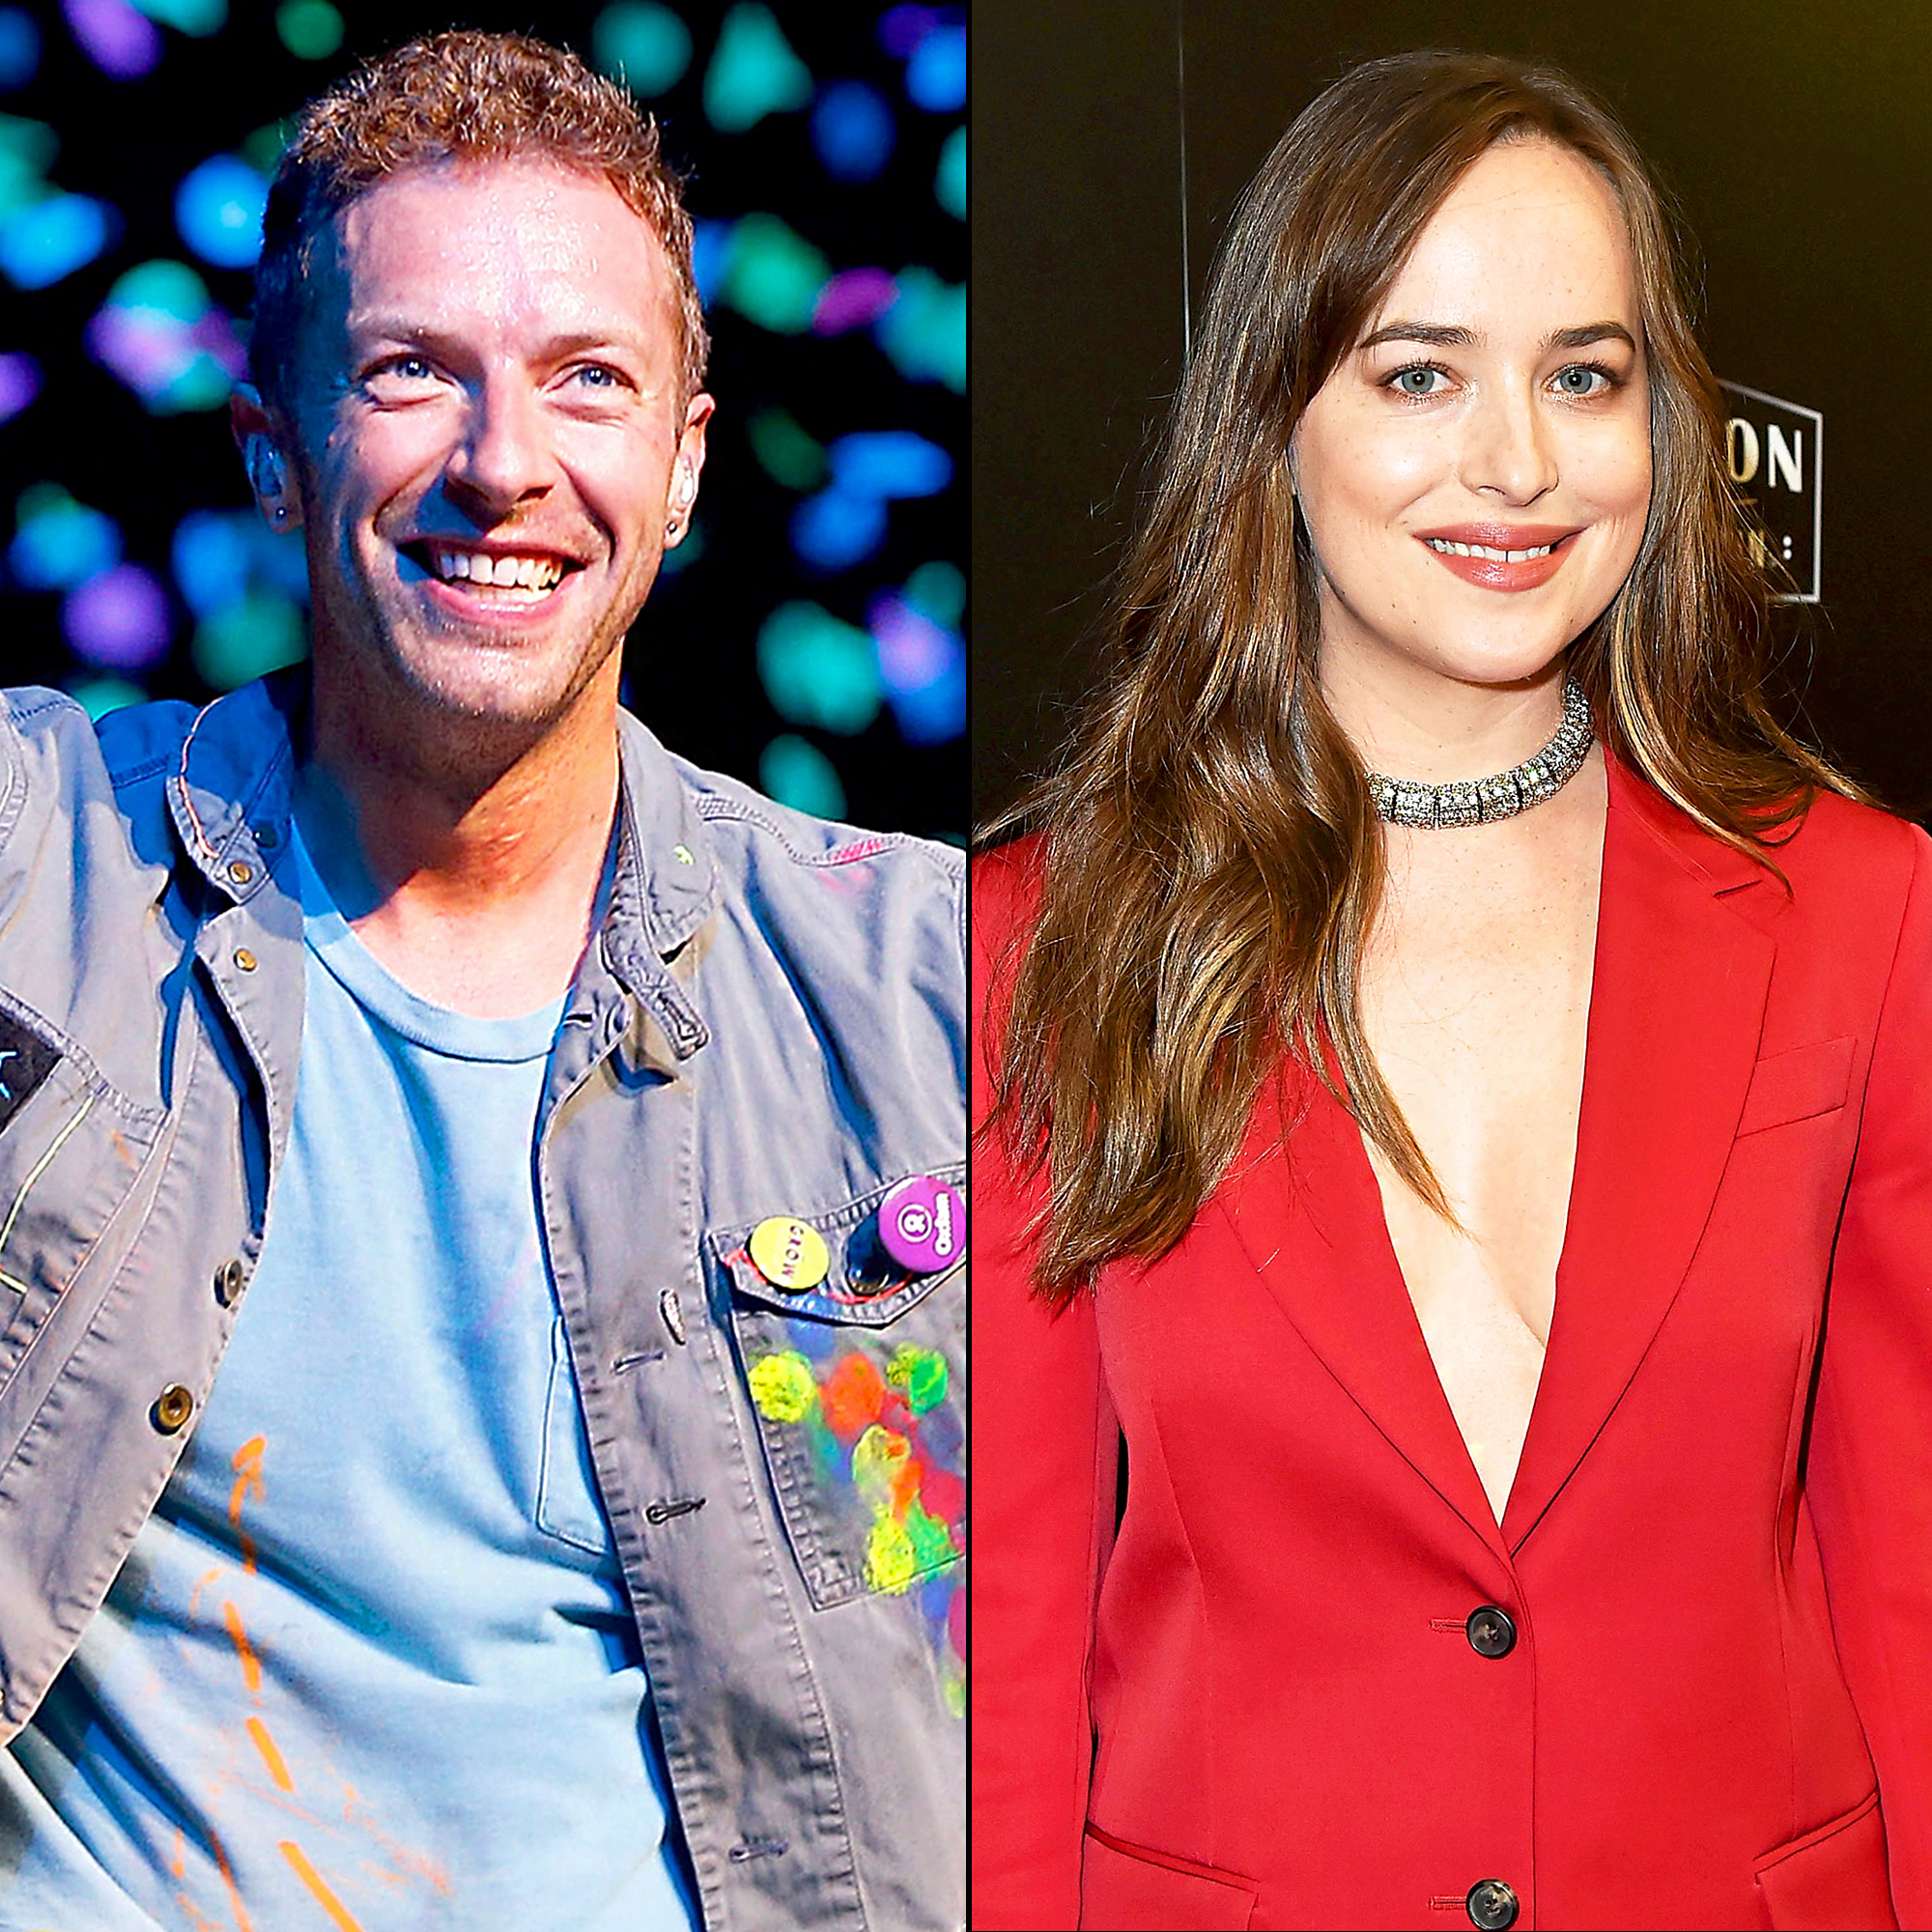 Chris Martin and Dakota Johnson